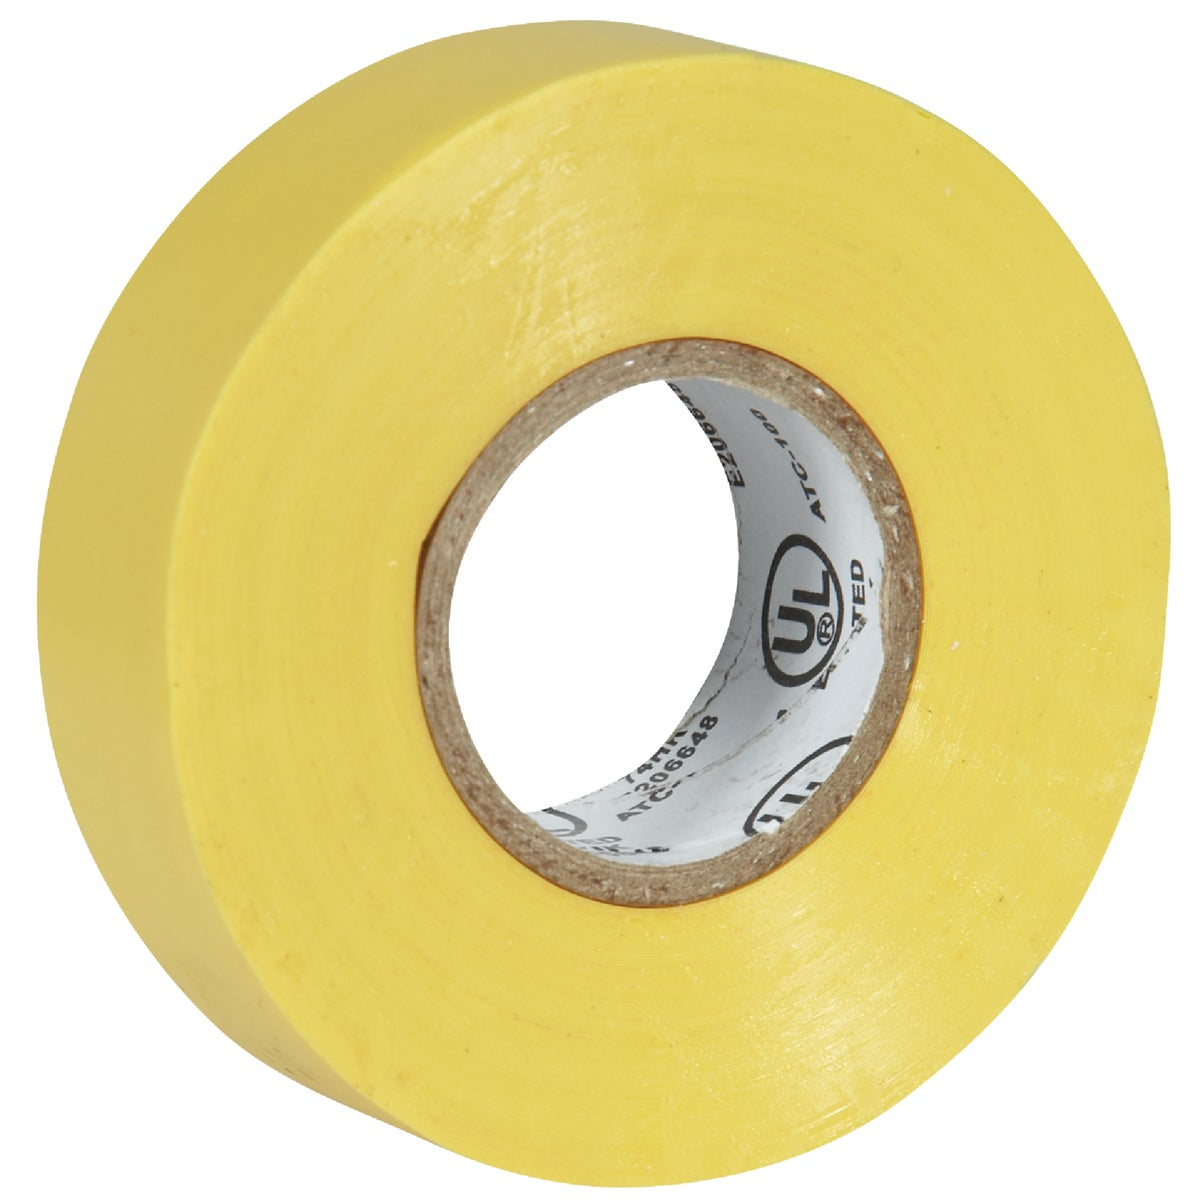 YELLOW ELECTRICAL TAPE - 528269 by Do it Best